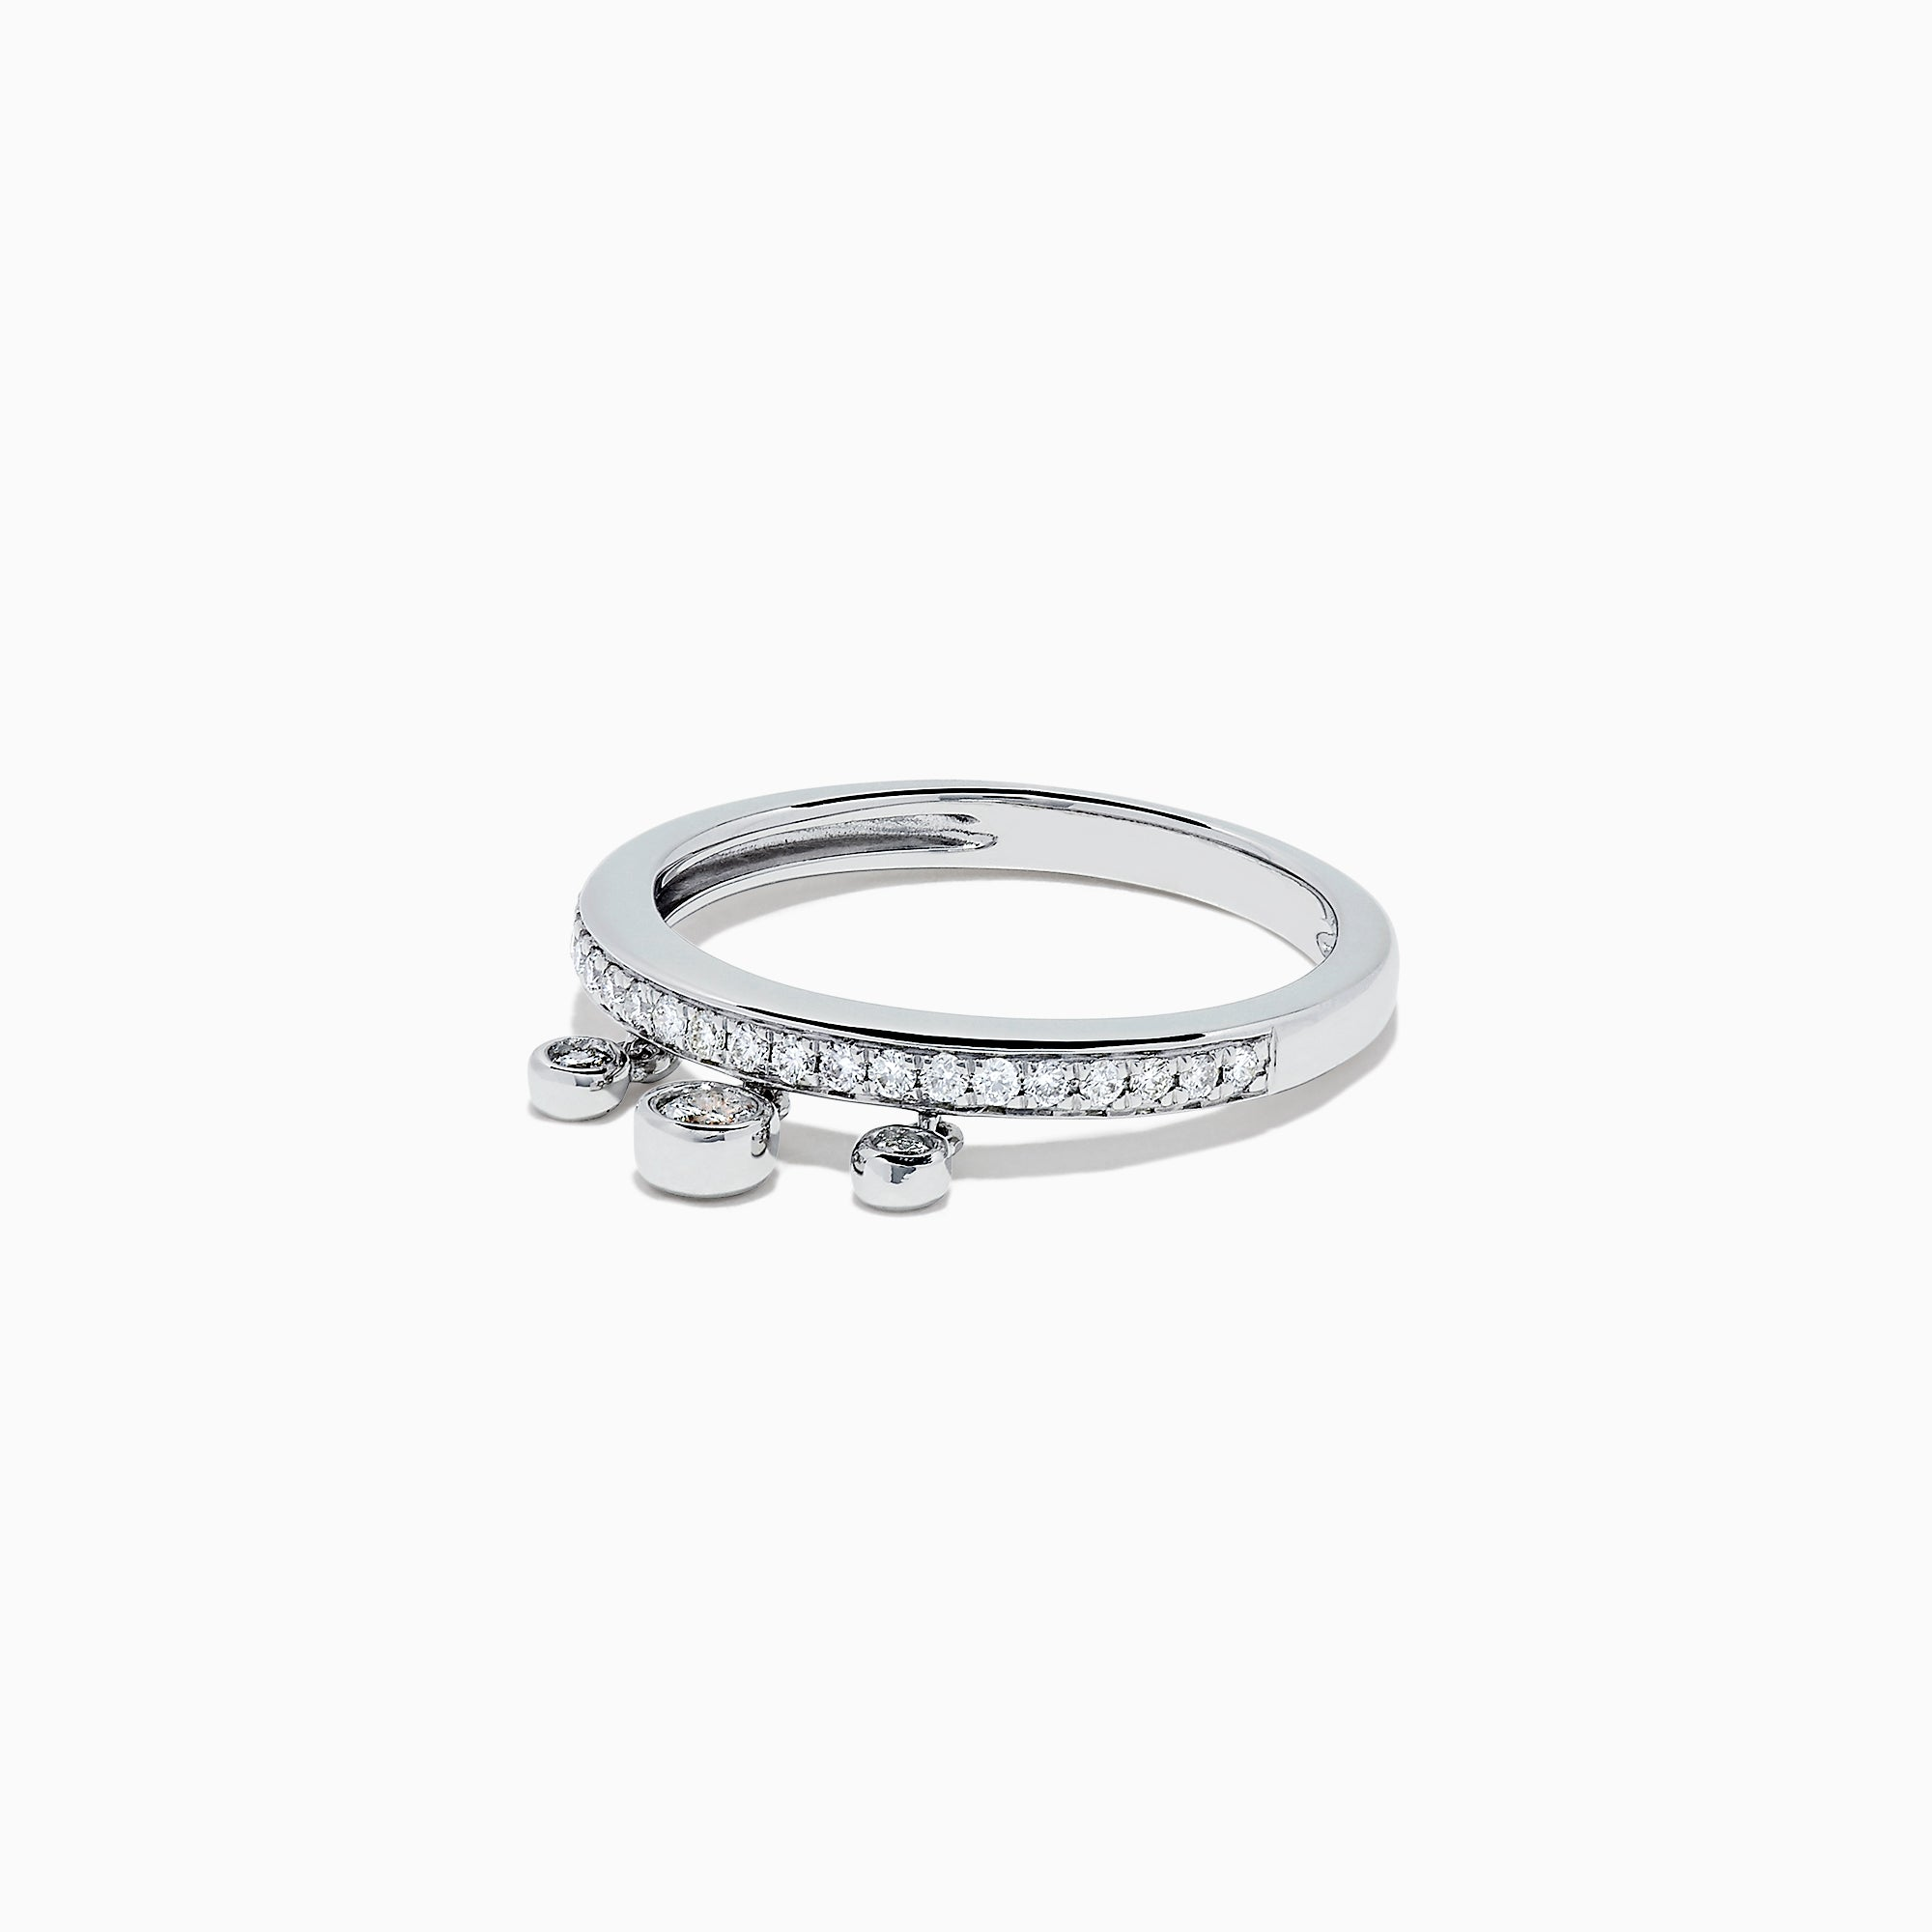 Effy Pave Classica 14K White Gold Diamond Charms Ring, 0.26 TCW